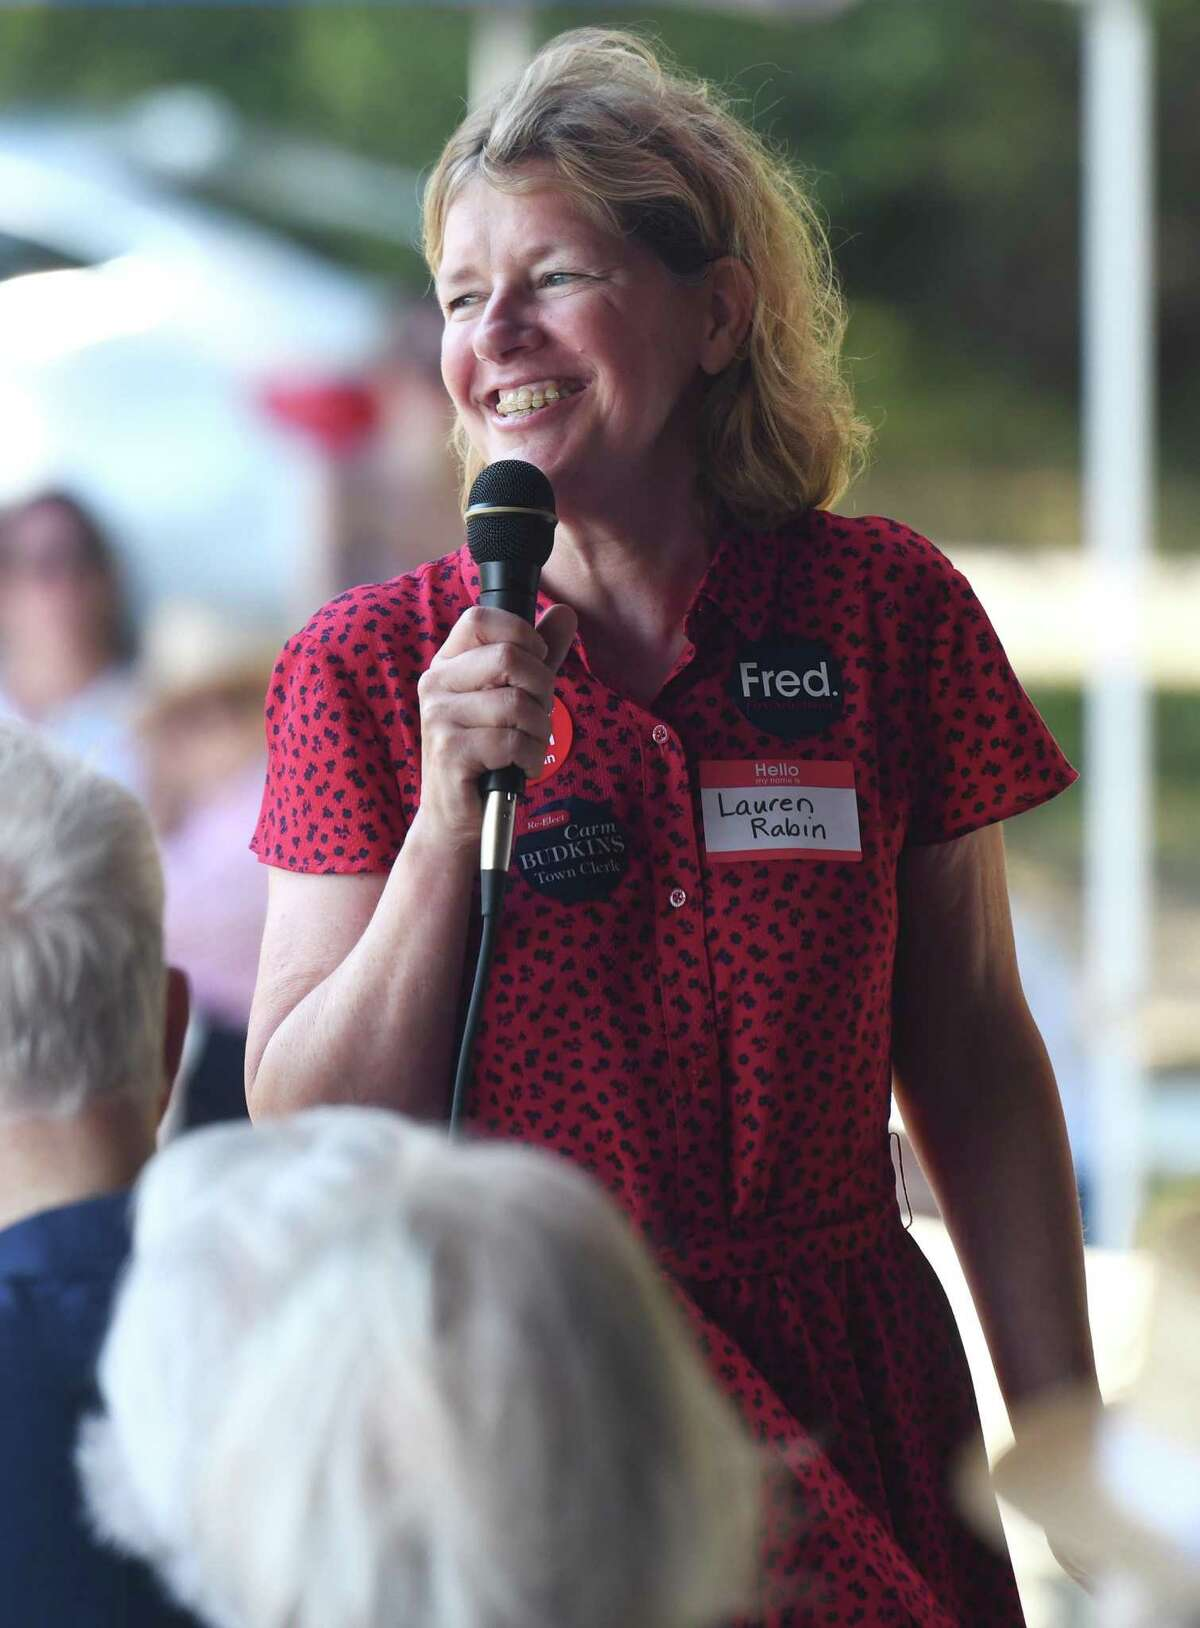 Selectman candidate Lauren Rabin speaks at the Greenwich Republican Town Committee annual clambake at Greenwich Point Park's Clambake Area. She and Litvack will face off in debates on Oct. 10 and Oct. 22.